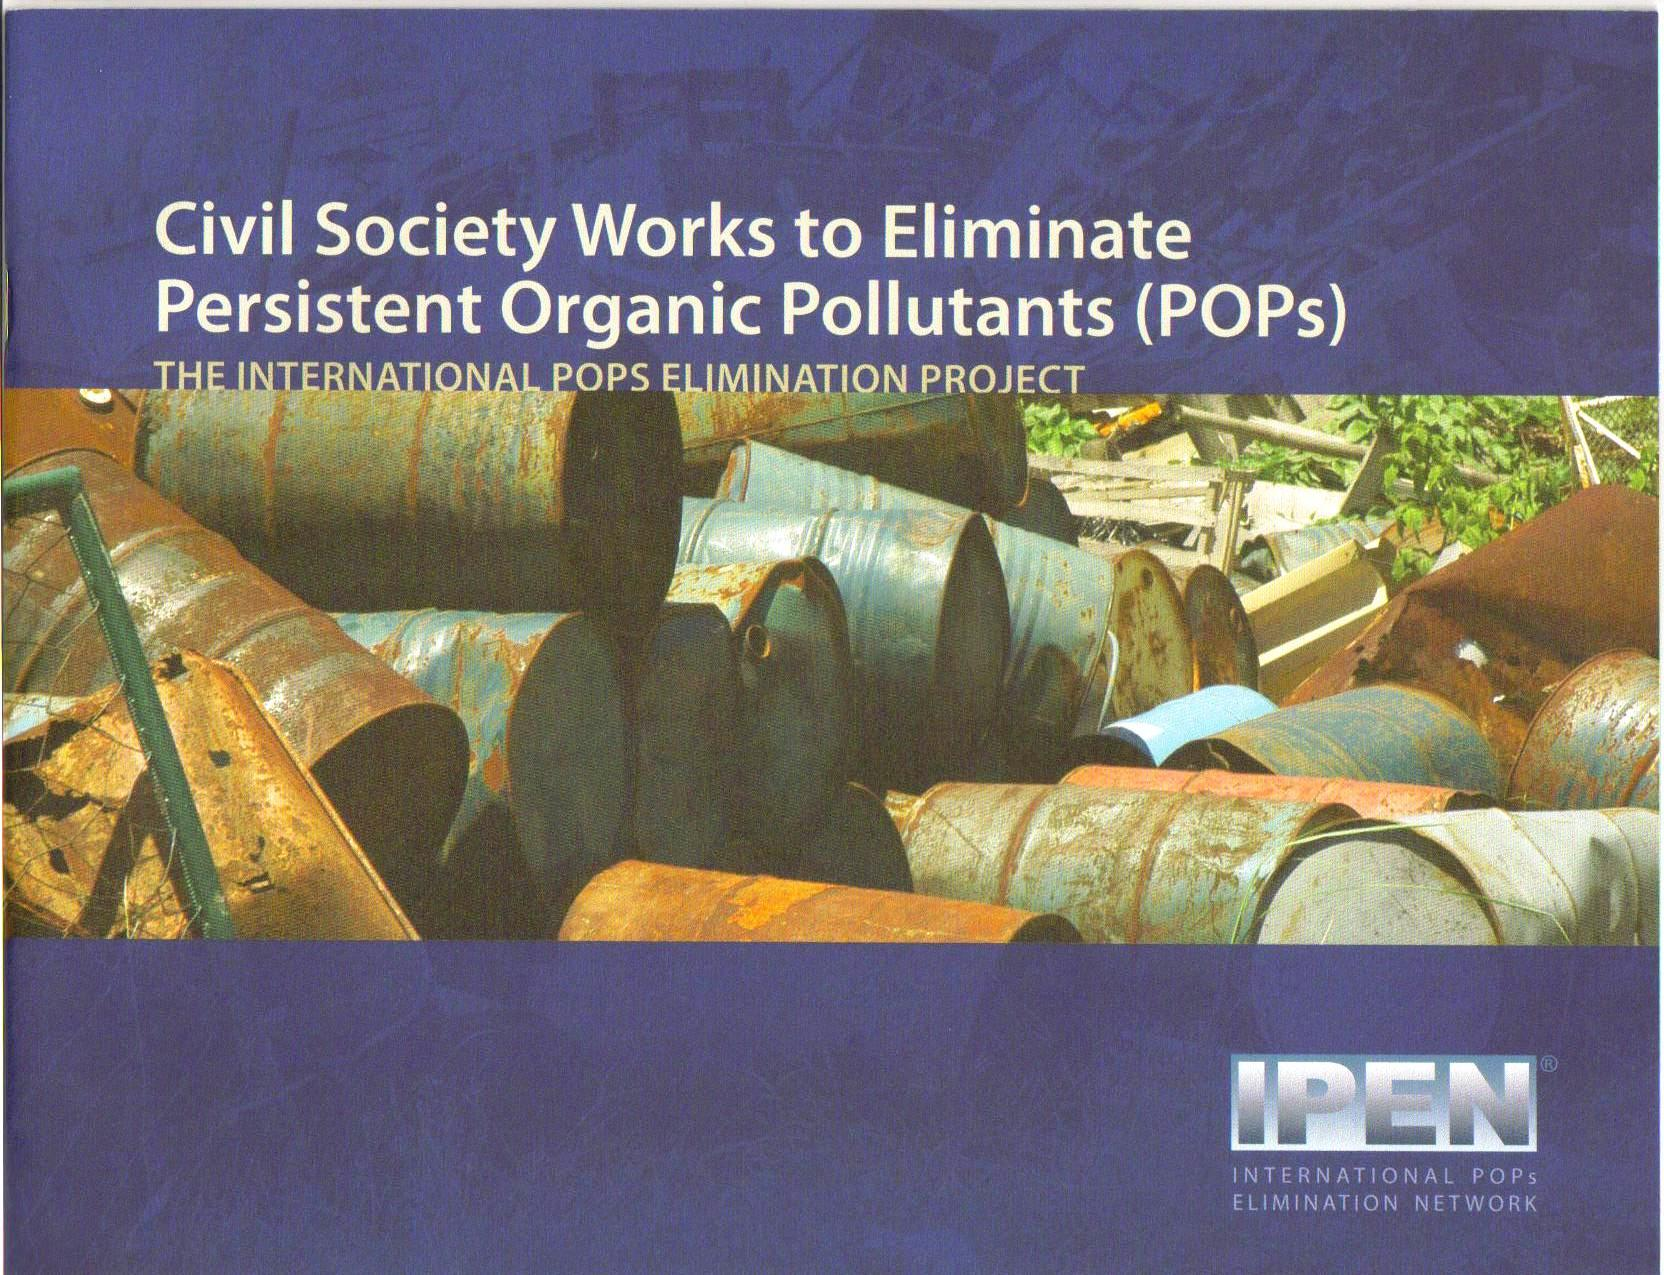 Civil Society Works to Eliminate POPs